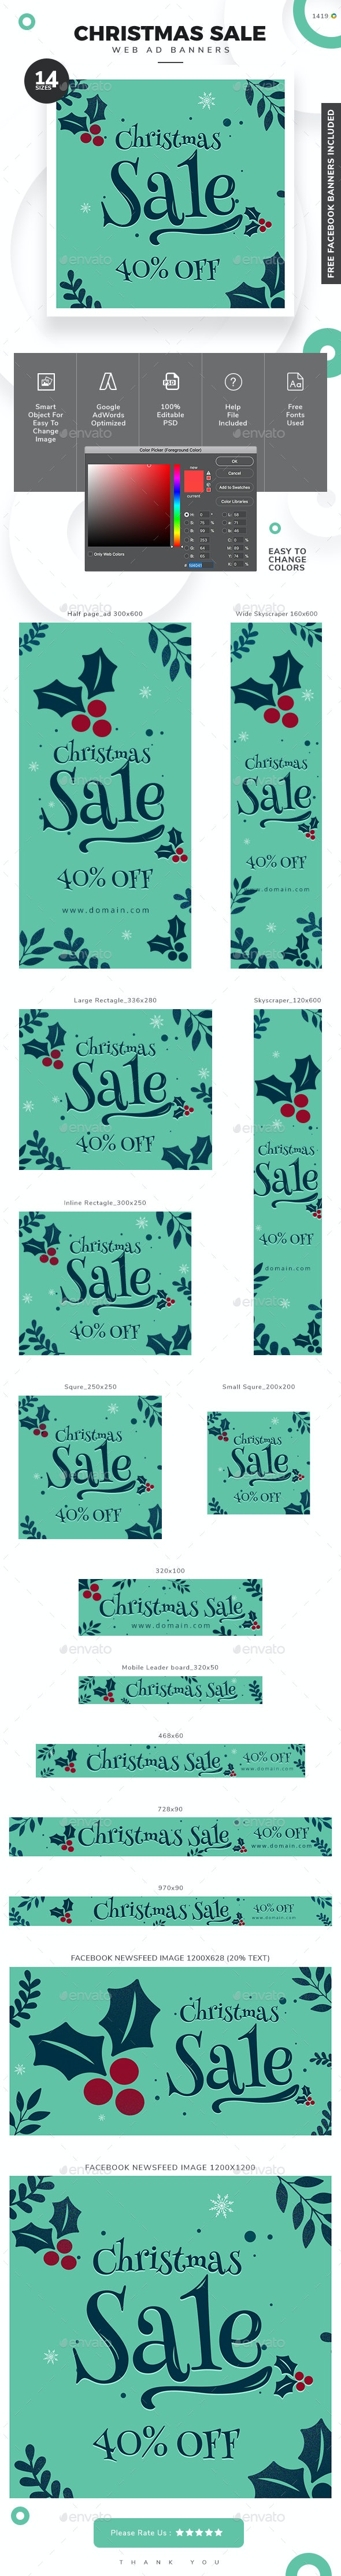 Christmas Sale Web Banner Set - Banners & Ads Web Elements